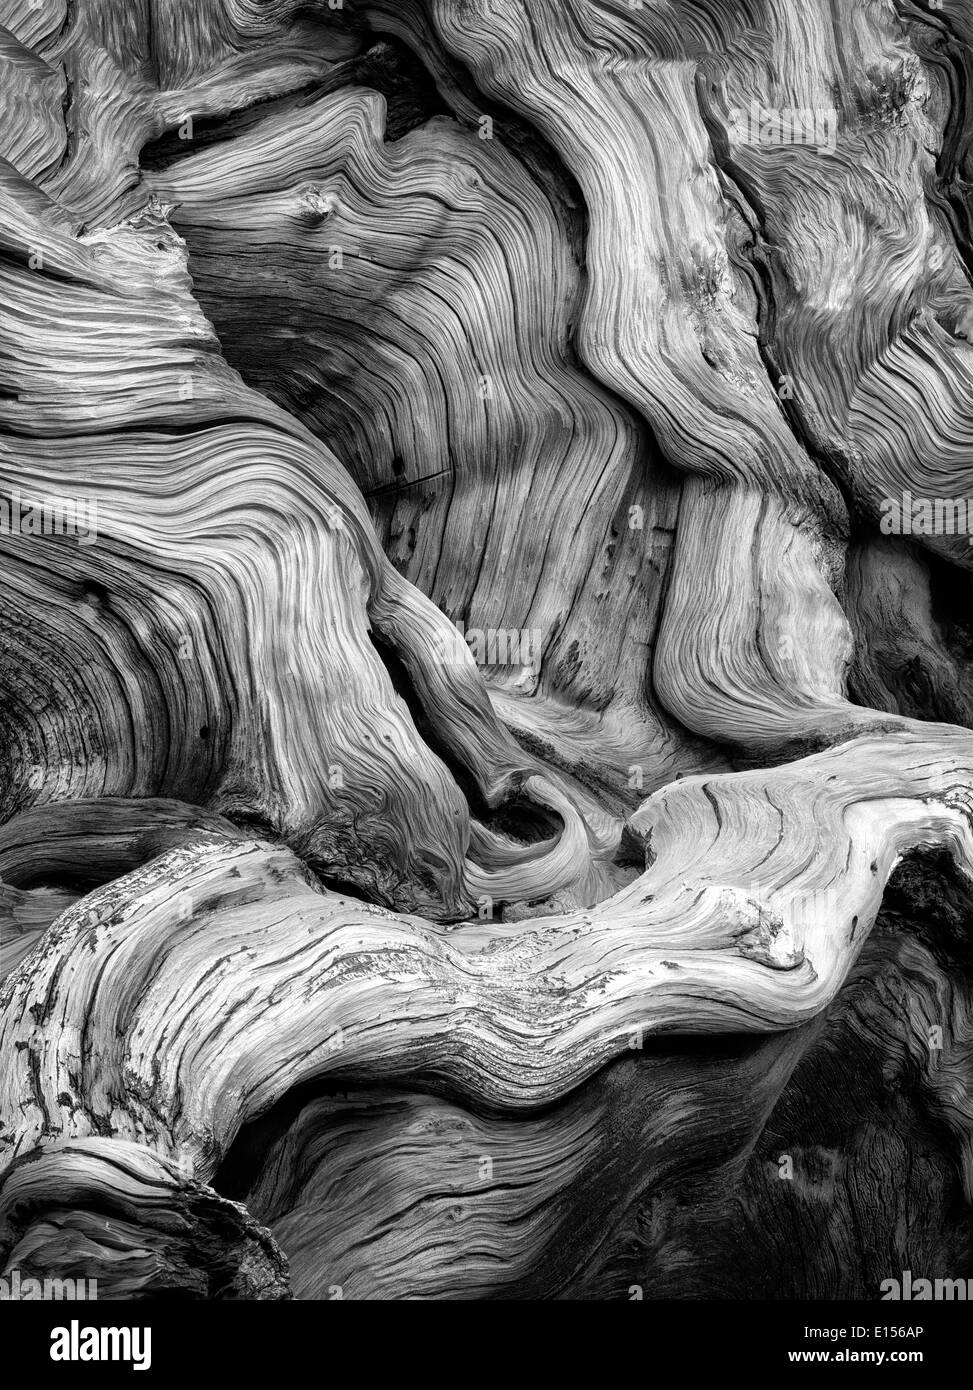 Gnarled exposed roots of Bristlecone Pine Tree. Ancient Bristlecone Pine Forest, Inyo county, California - Stock Image